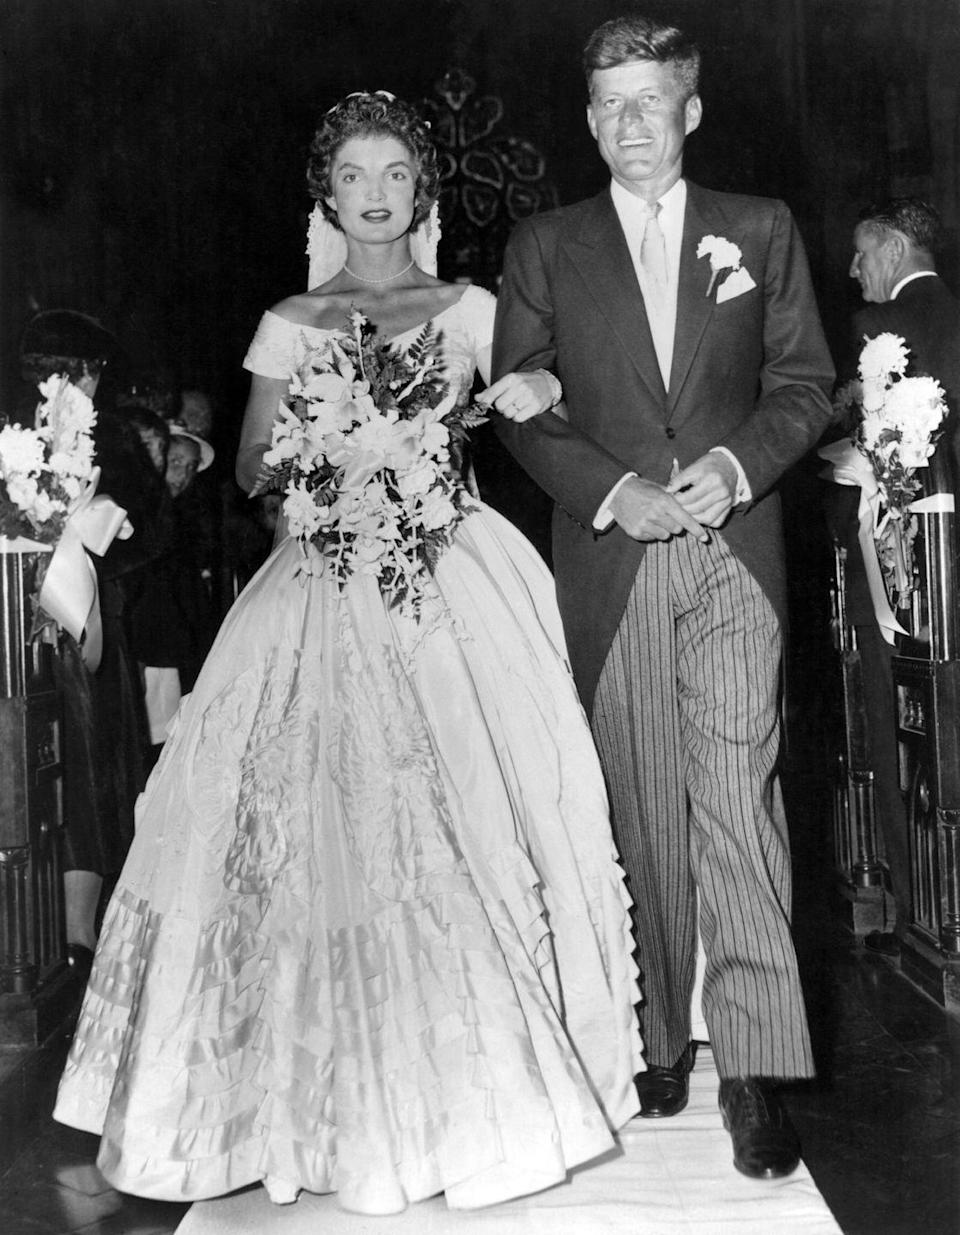 <p>Jacqueline Bouvier and JFK's Rhode Island wedding ceremony was not one to be forgotten. The bride's iconic full-skirted off-the-shoulder ball gown was designed by Ann Lowe, an African-American seamstress who worked for America's elite families such as the Roosevelt's and the Rockefeller's, in addition to the Kennedy's.</p>